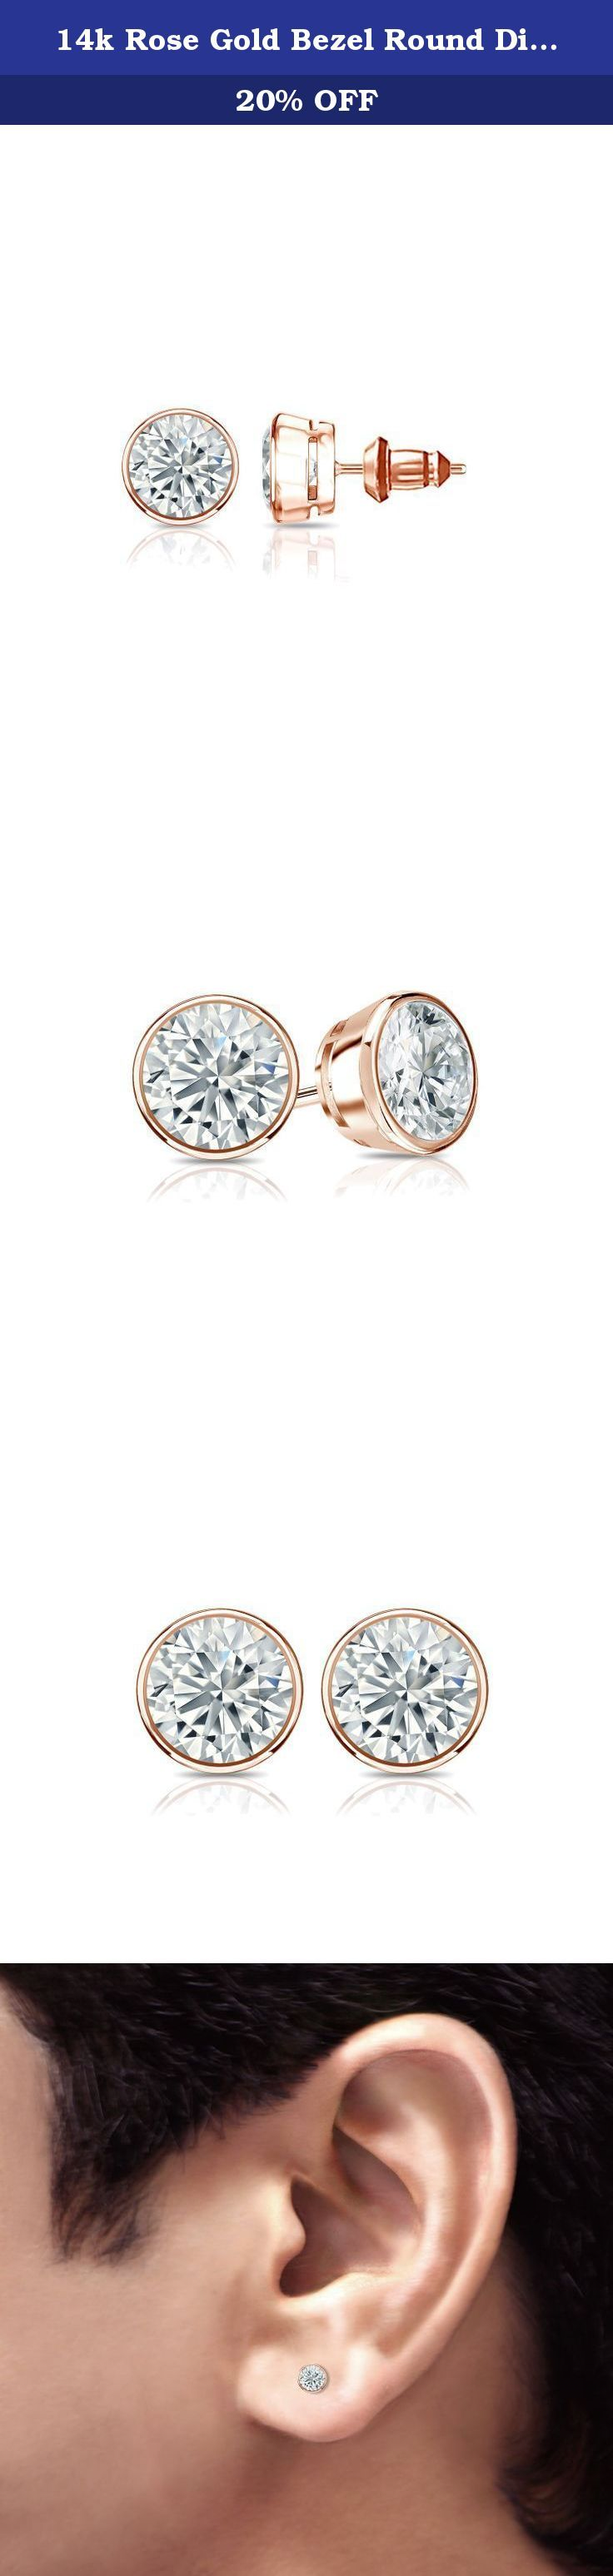 14k Rose Gold Bezel Round Diamond Men's Stud Earrings (1/2 ct, White, I1-I2). These gorgeous diamond stud earrings for men features bezel setting in glistening 14k rose gold metal. The studs include dazzling round-cut diamonds with total weight of 1/2 ct. and are available with secure lock back clasps.